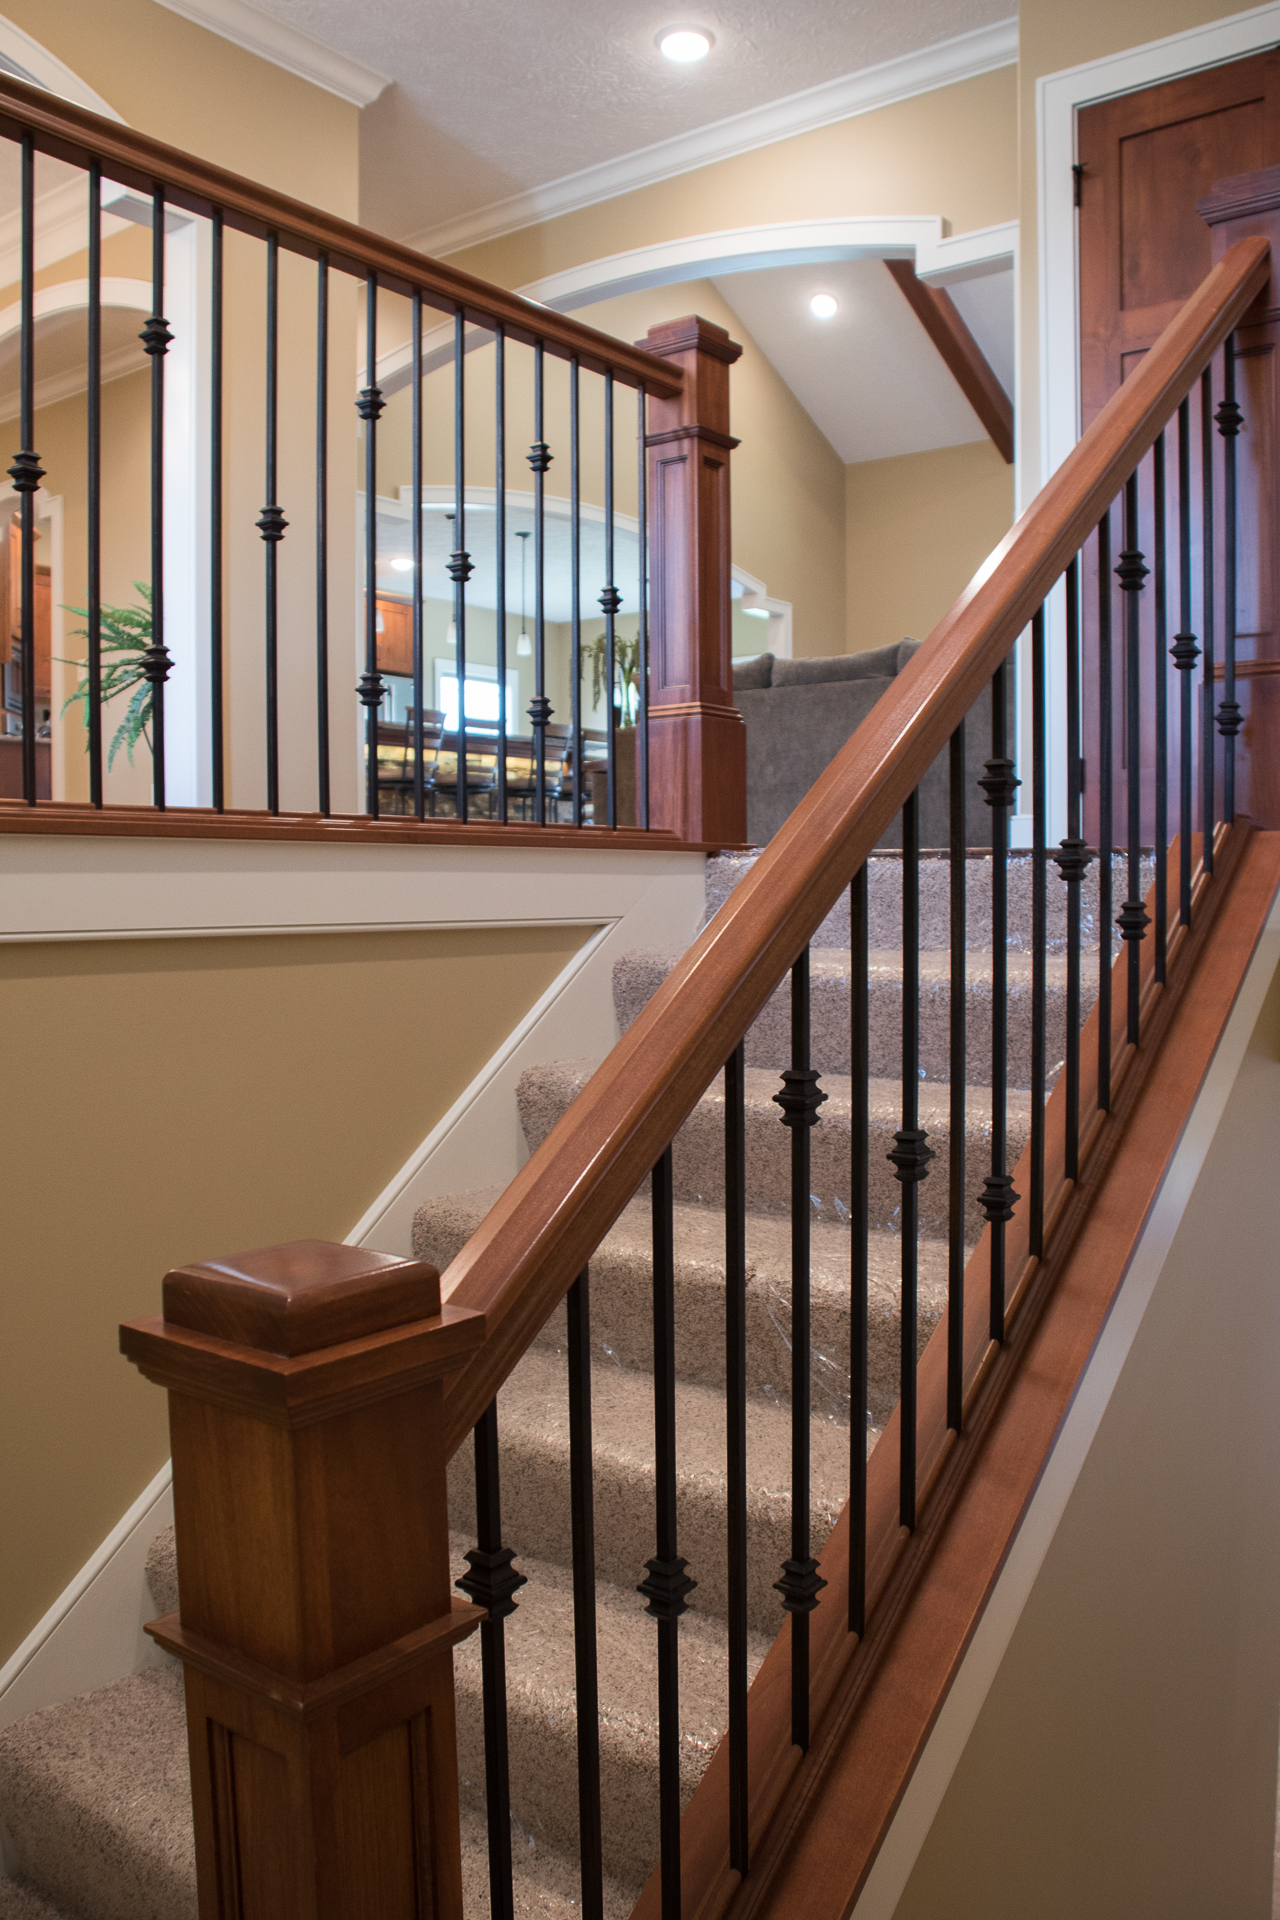 Stained newel posts & railings, painted skirtboards and knuckles-plain/double/plain/single iron balusters